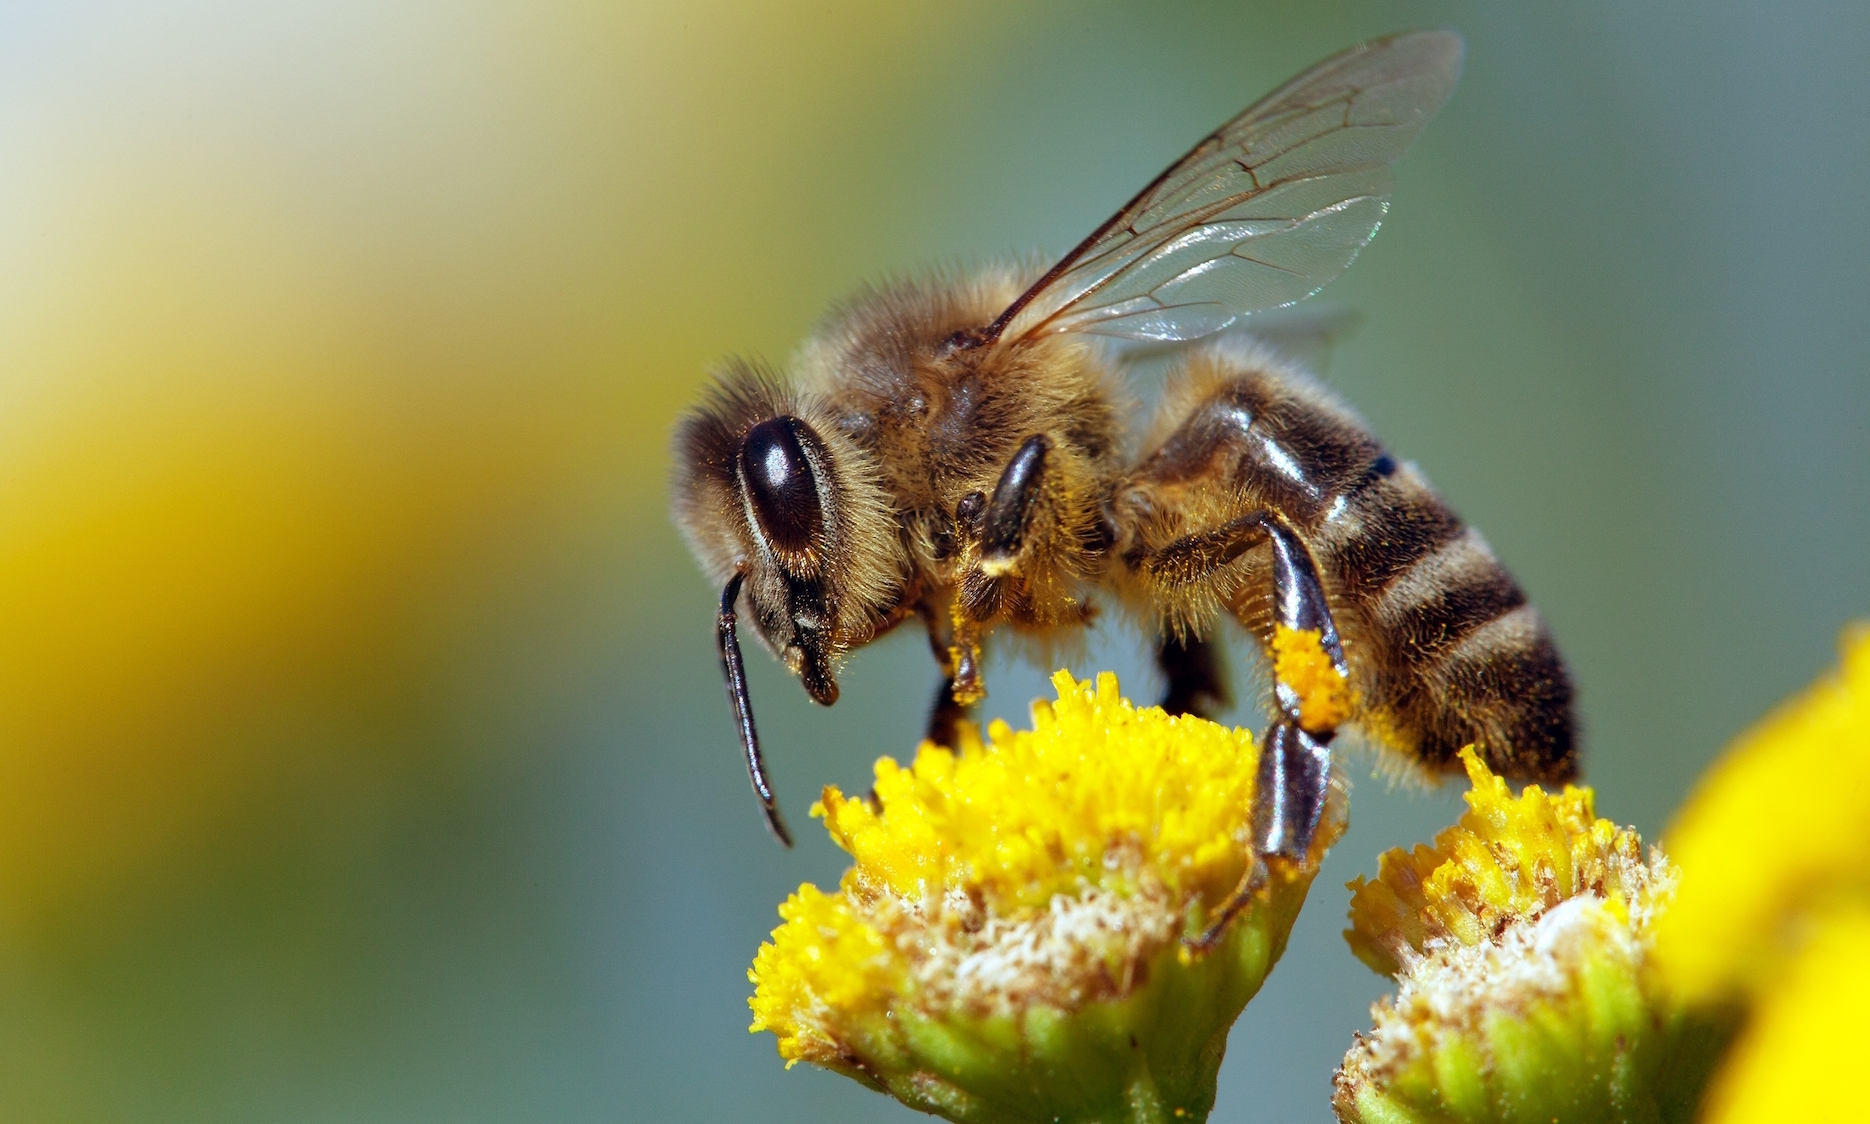 A new study represents an important breakthrough that could help in the creation of pesticides that are not toxic to bees.